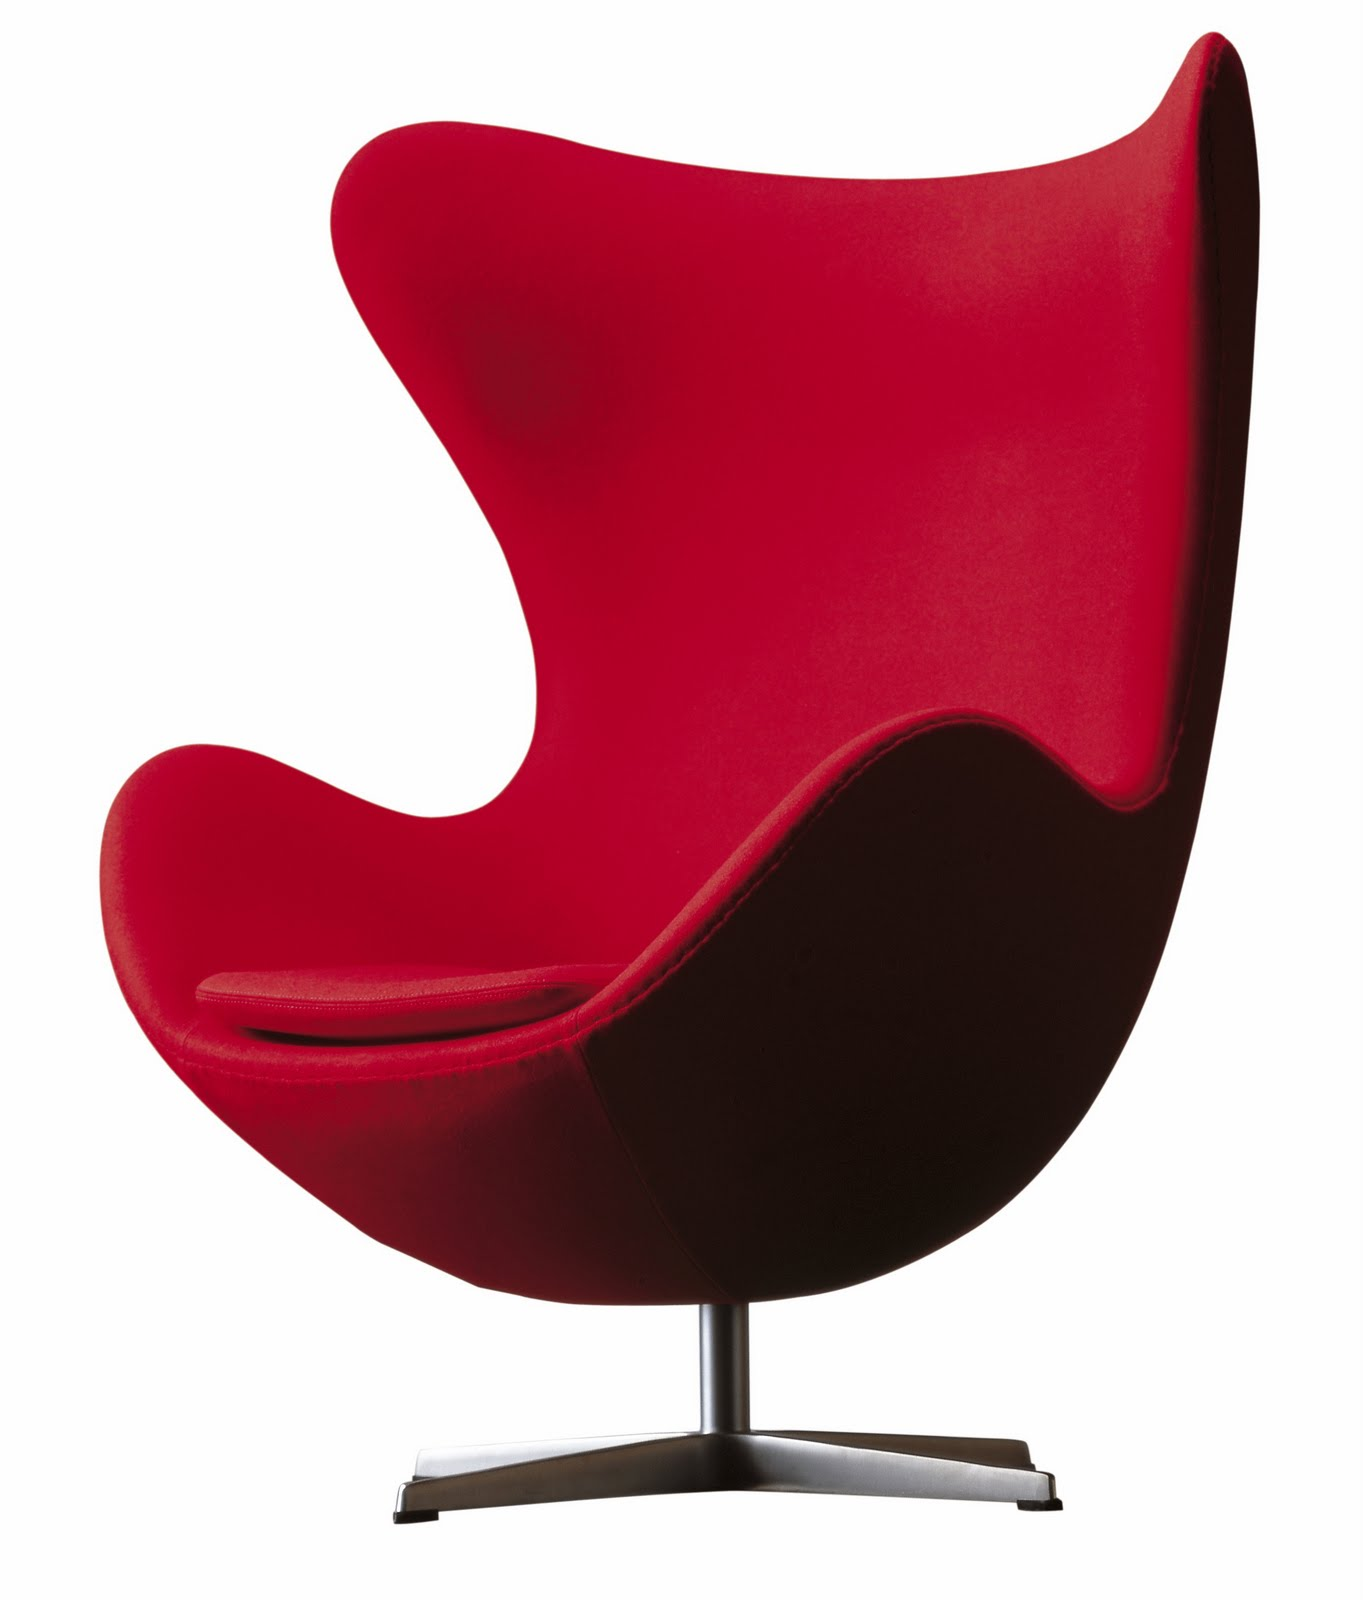 Modern Furniture Chair modern interior design: original egg℠ shaped egg chair lounge with